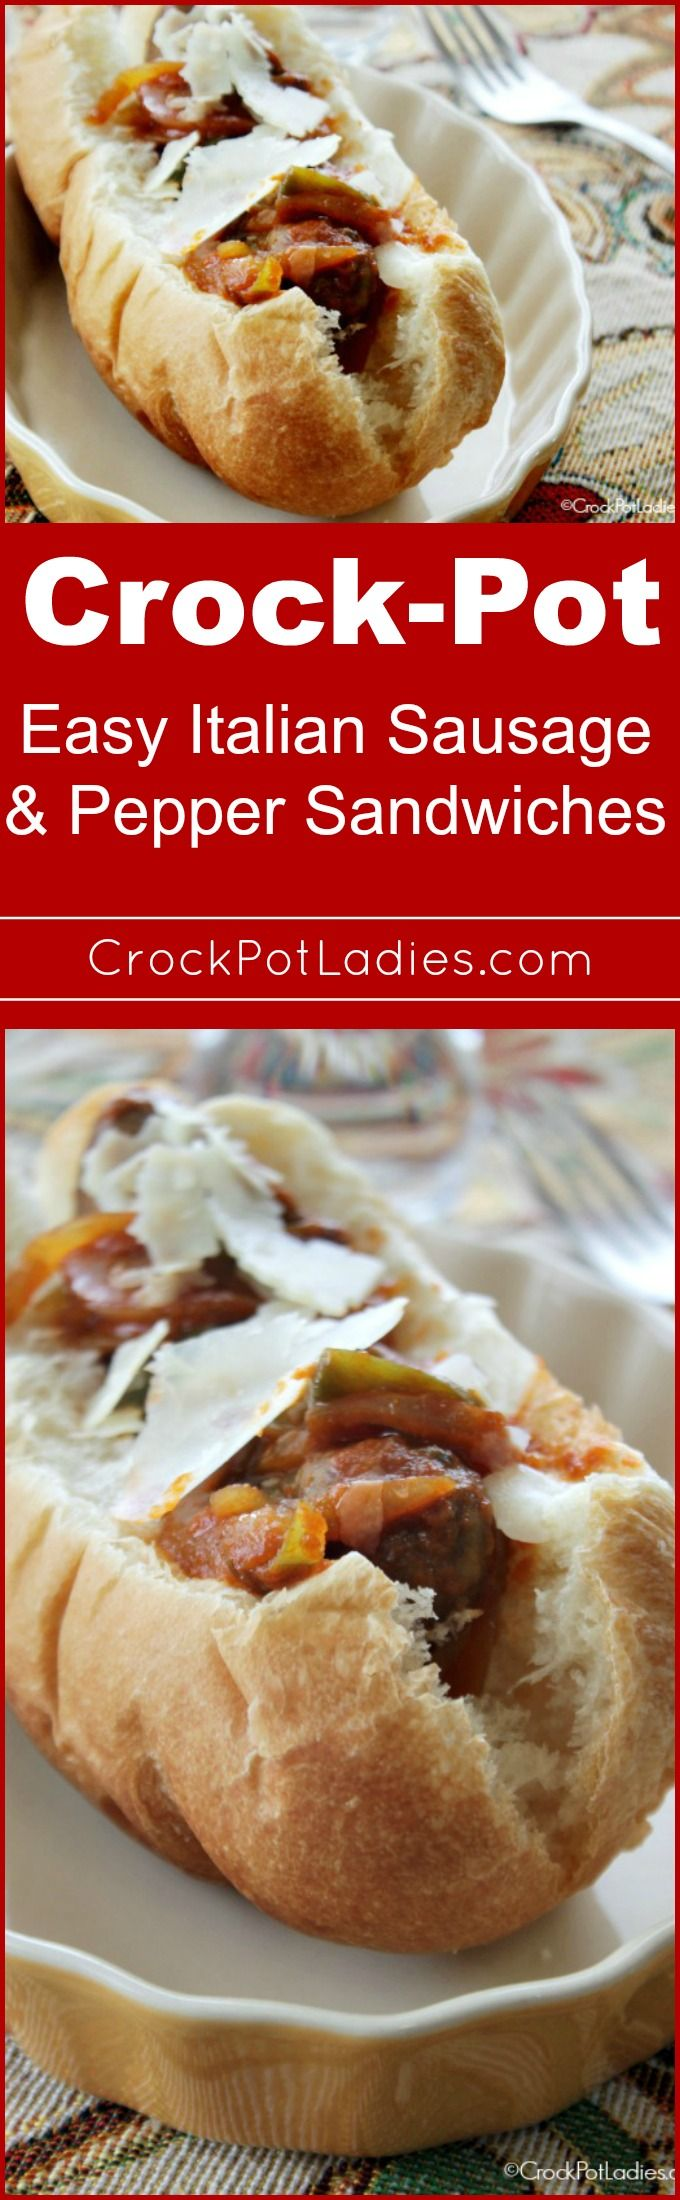 Crock-Pot Easy Italian Sausage & Pepper Sandwiches - Try this super easy way to make Slow Cooker Easy Italian Sausage & Pepper Sandwiches in your crock-pot cooker. A great lunch or dinner recipe for families on the go! Just 4 ingredients and dinner is on the table. BONUS... can also be made into a slow cooker freezer meal! | CrockPotLadies.com via @CrockPotLadies